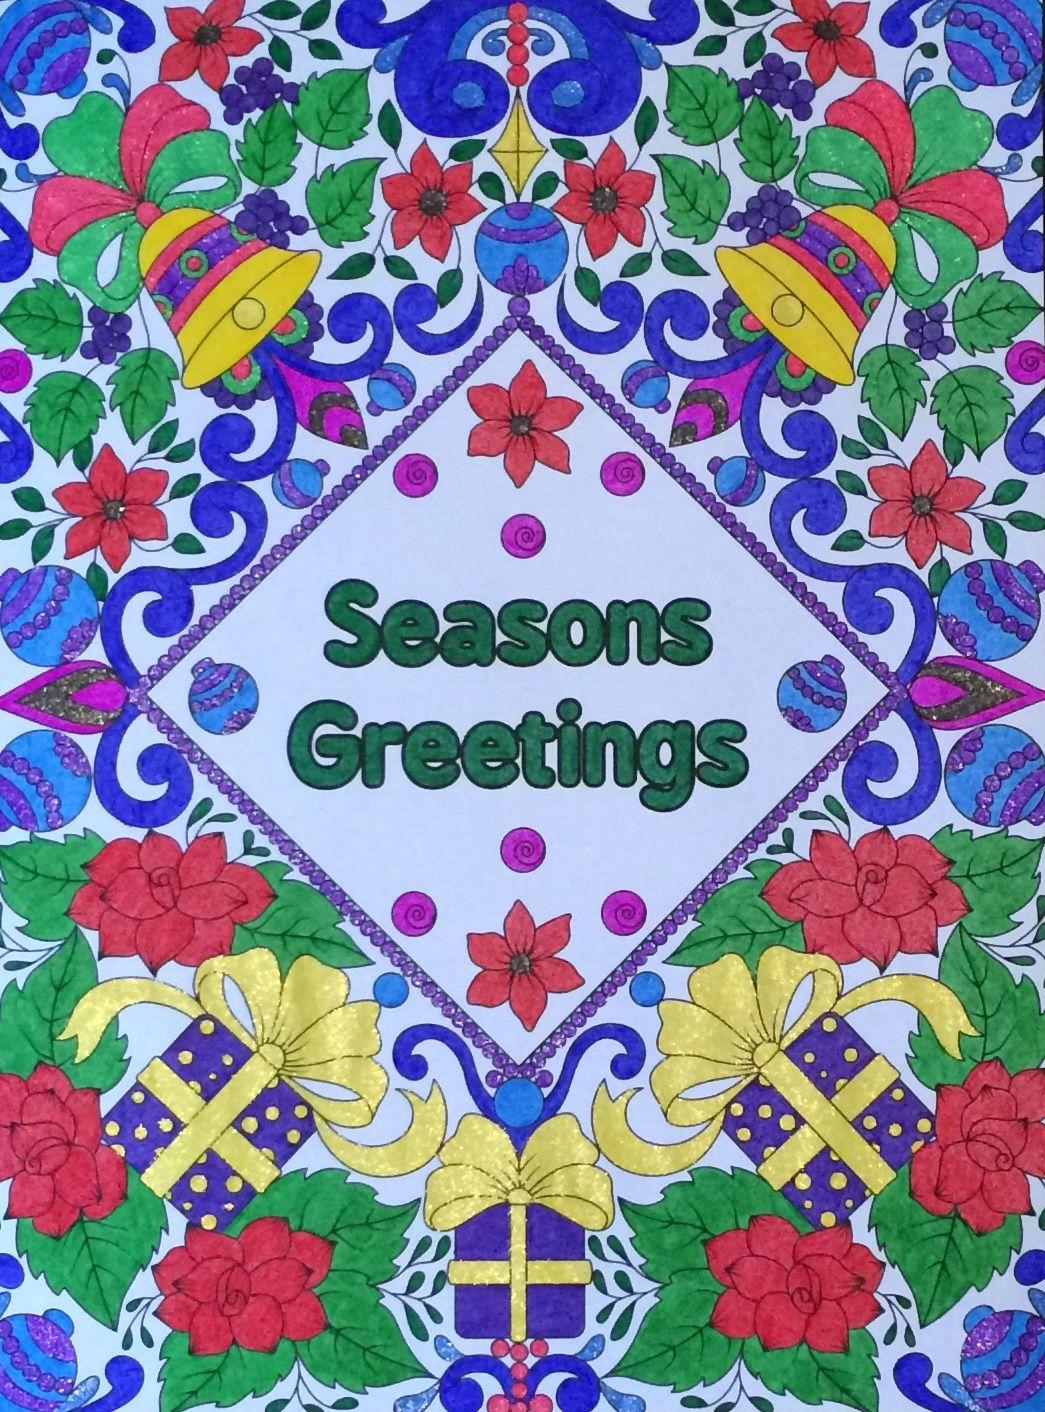 seasons greetings from the jade summer christmas book coloured by laura